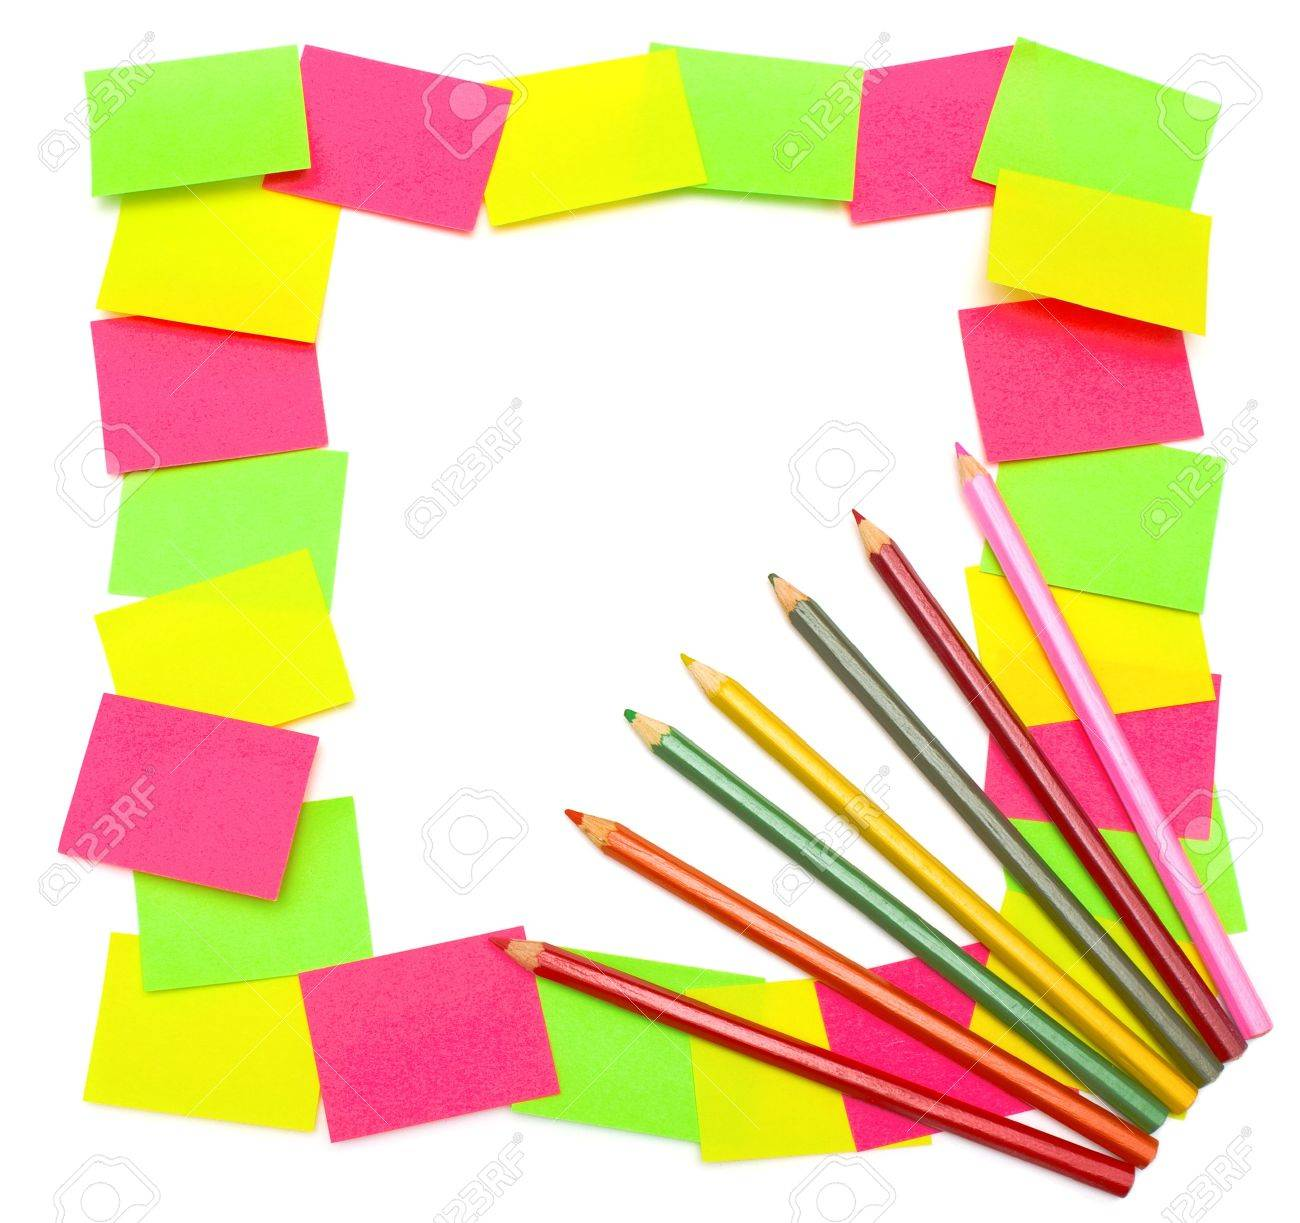 Colorful reminders  frame from paper stickers  green, yellow, pink  and seven colored pencils isolated on white background Stock Photo - 13162846